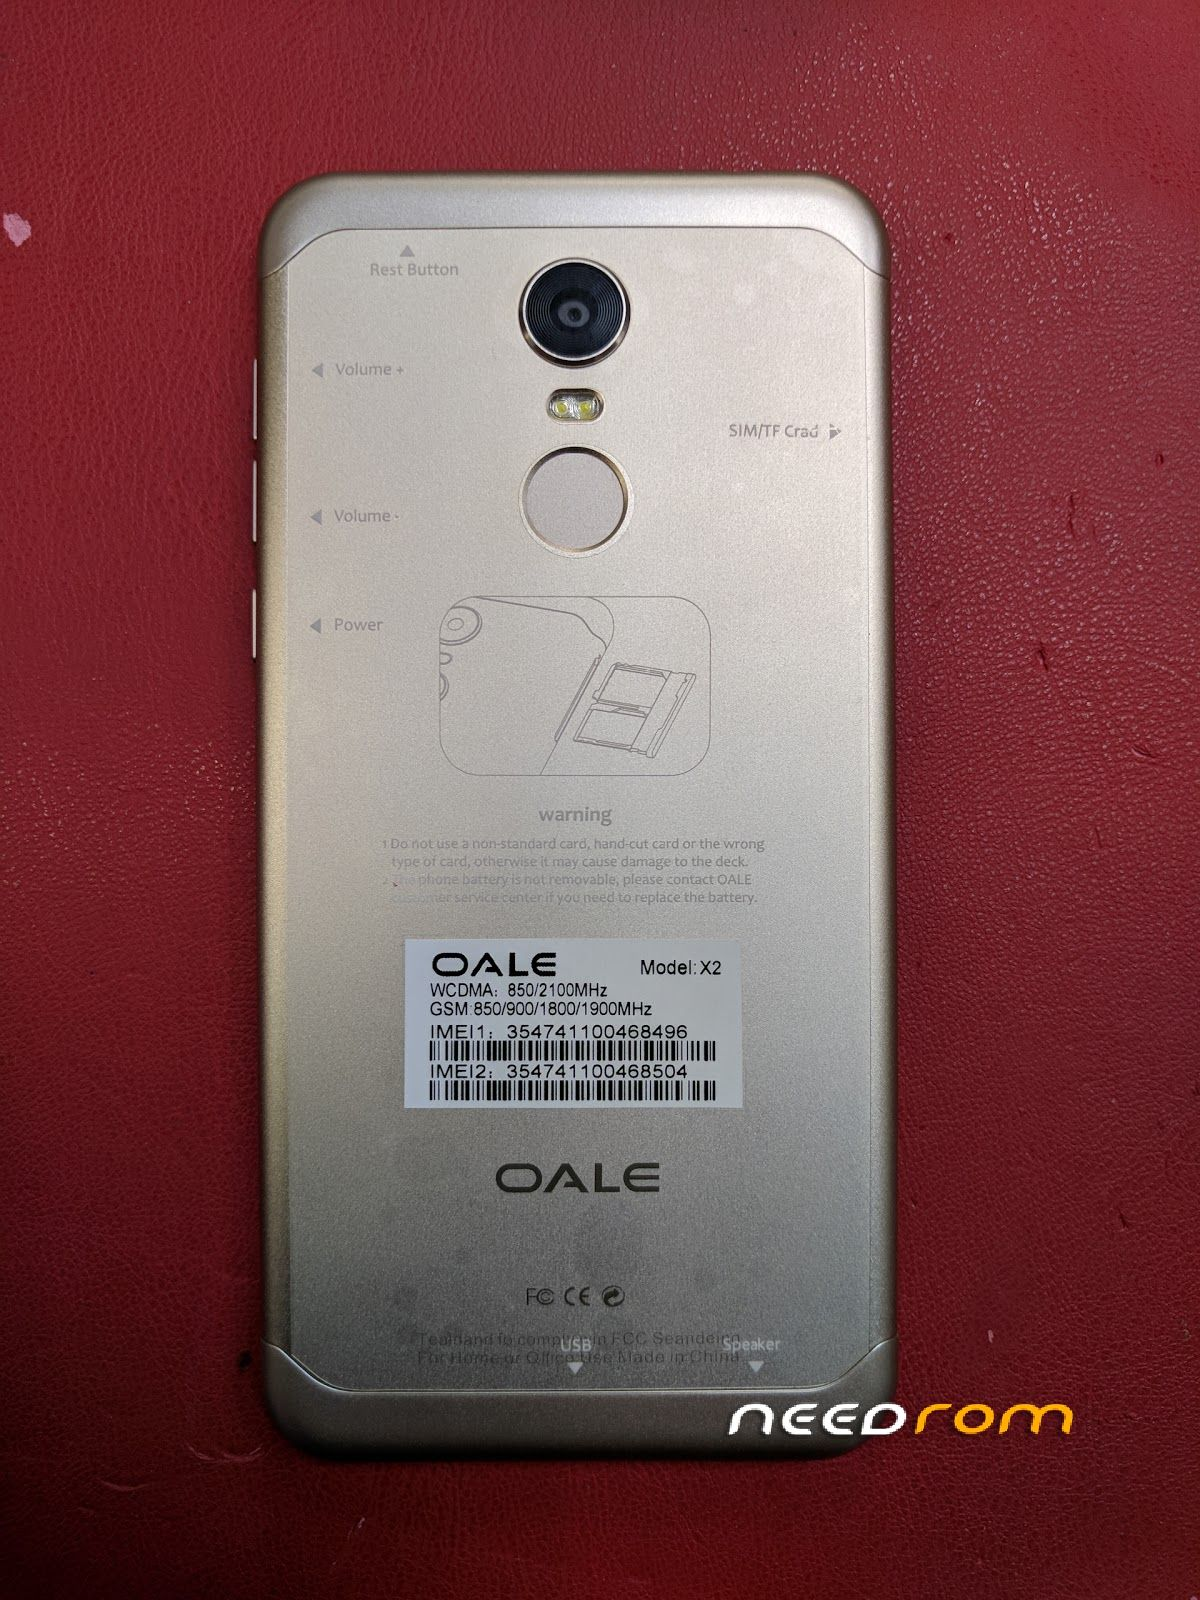 Oale x2 (blank or white lcd) | Repair Solution | Phone cases, Phone